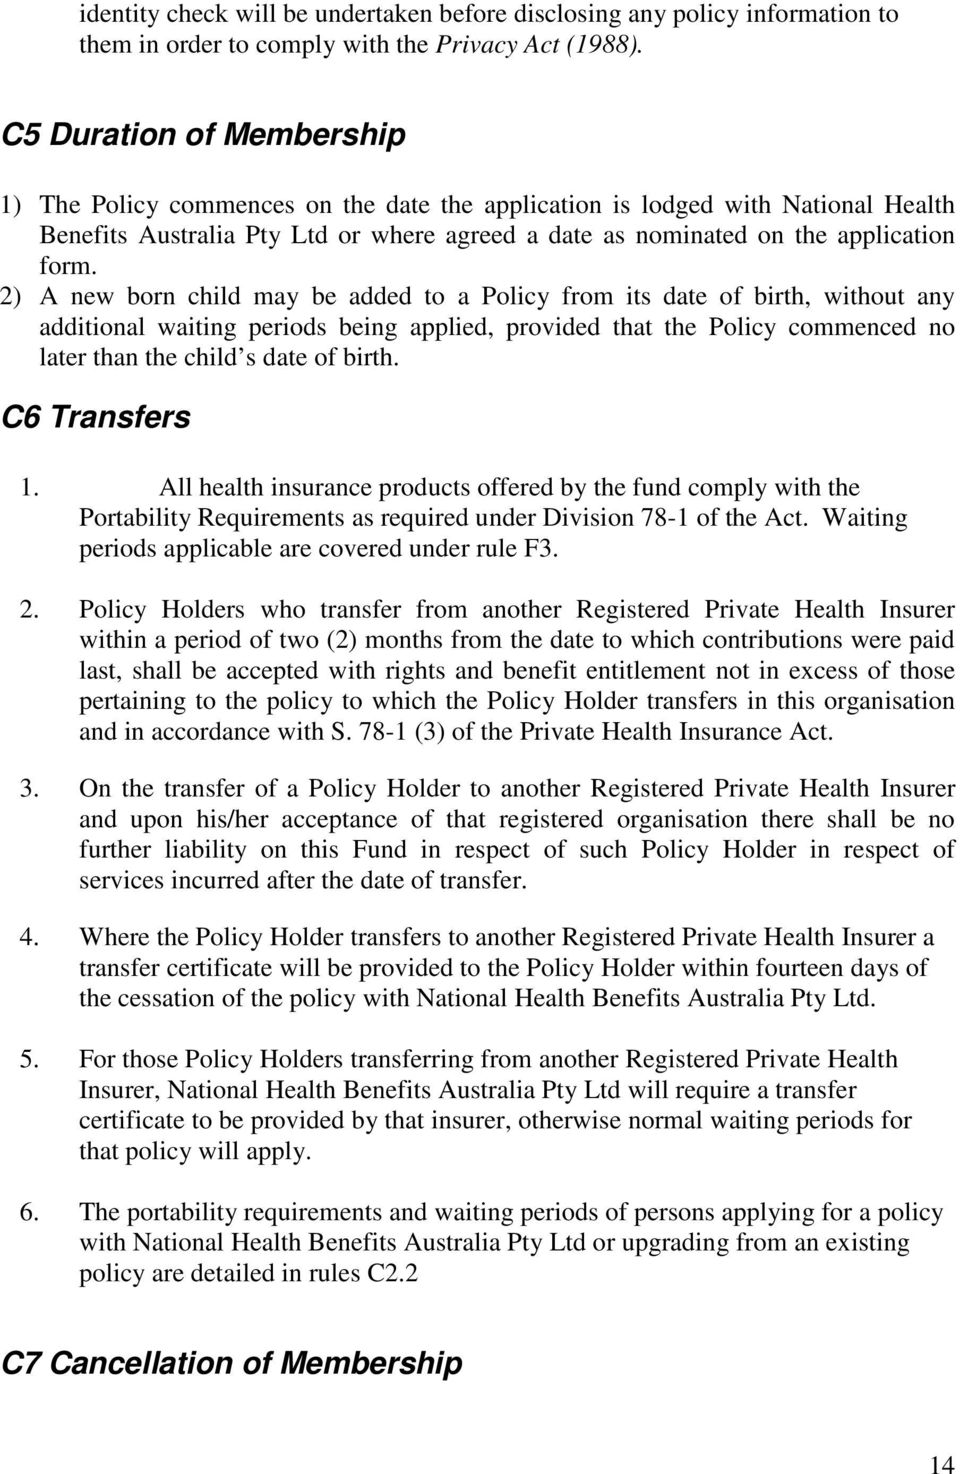 2) A new born child may be added to a Policy from its date of birth, without any additional waiting periods being applied, provided that the Policy commenced no later than the child s date of birth.